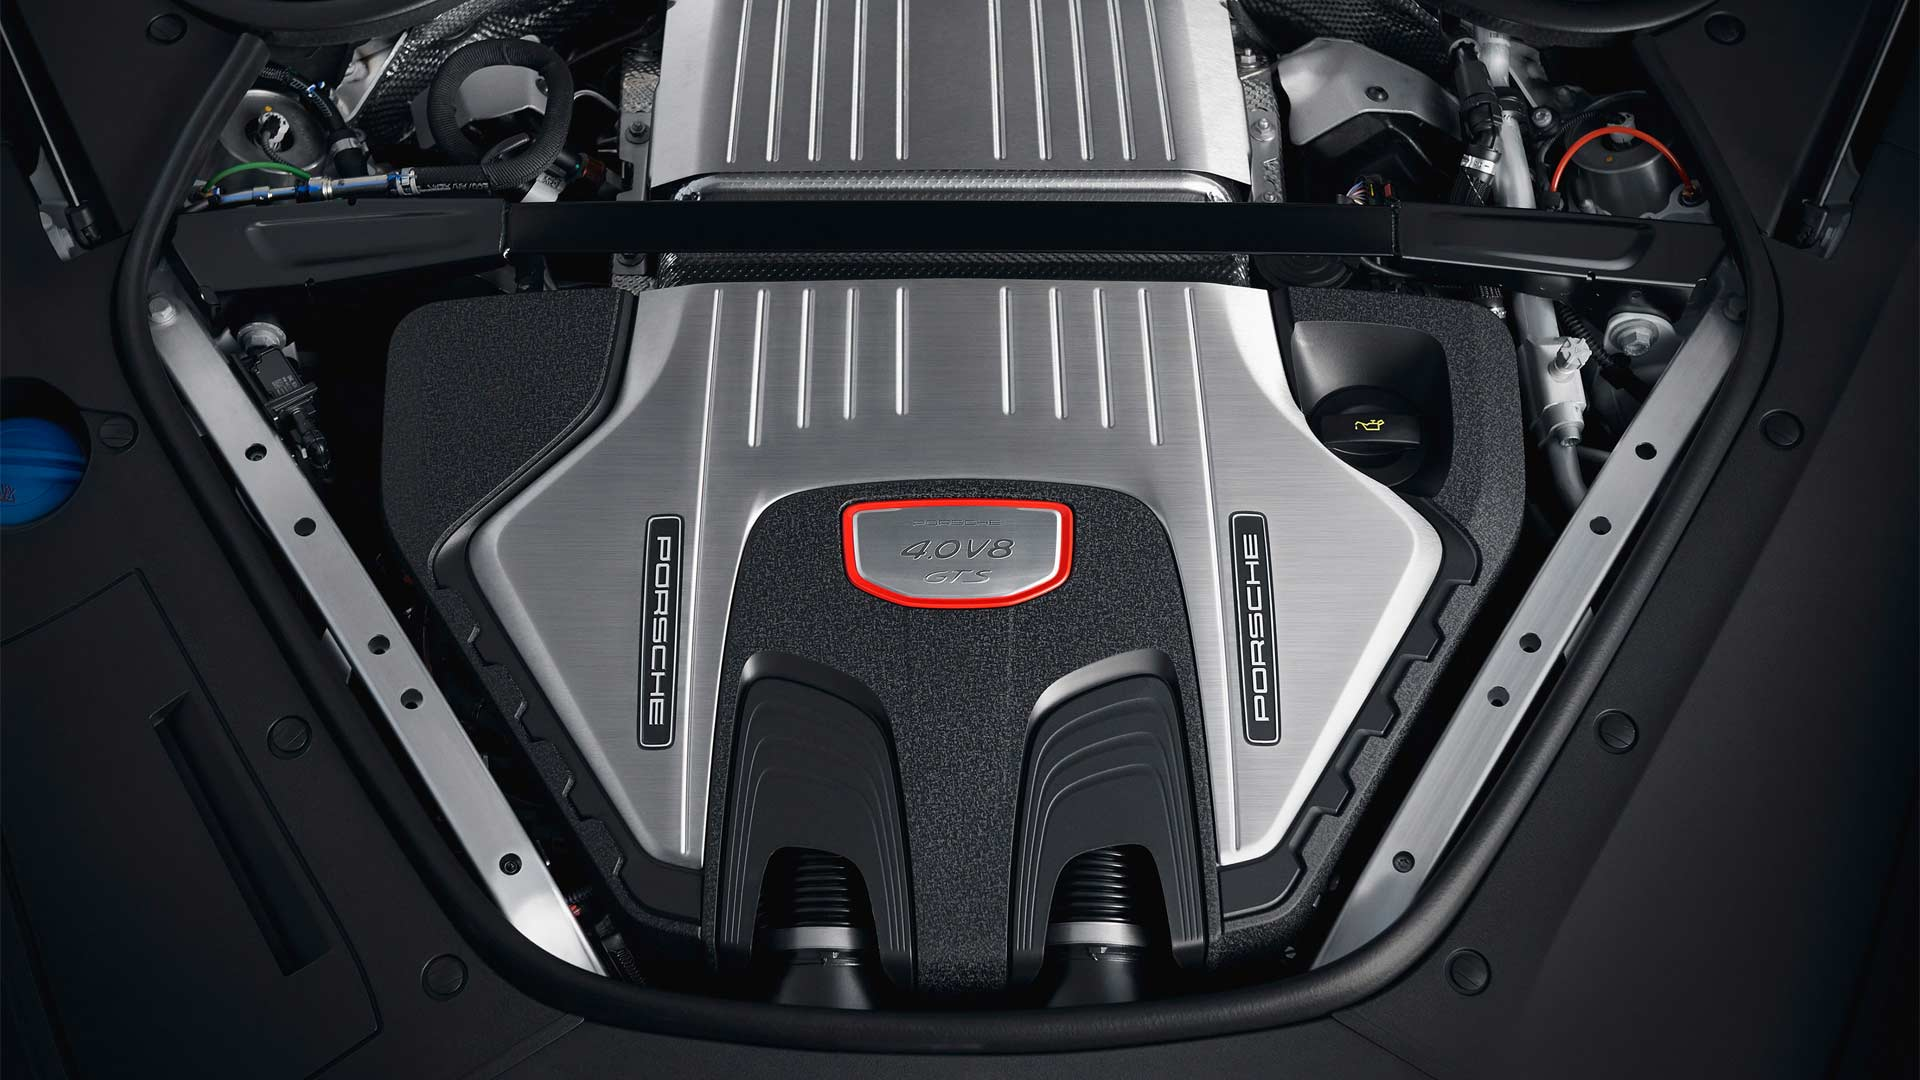 2018-2nd-generation-Porsche-Panamera-GTS-and-Panamera-GTS-Sport-Turismo-engine